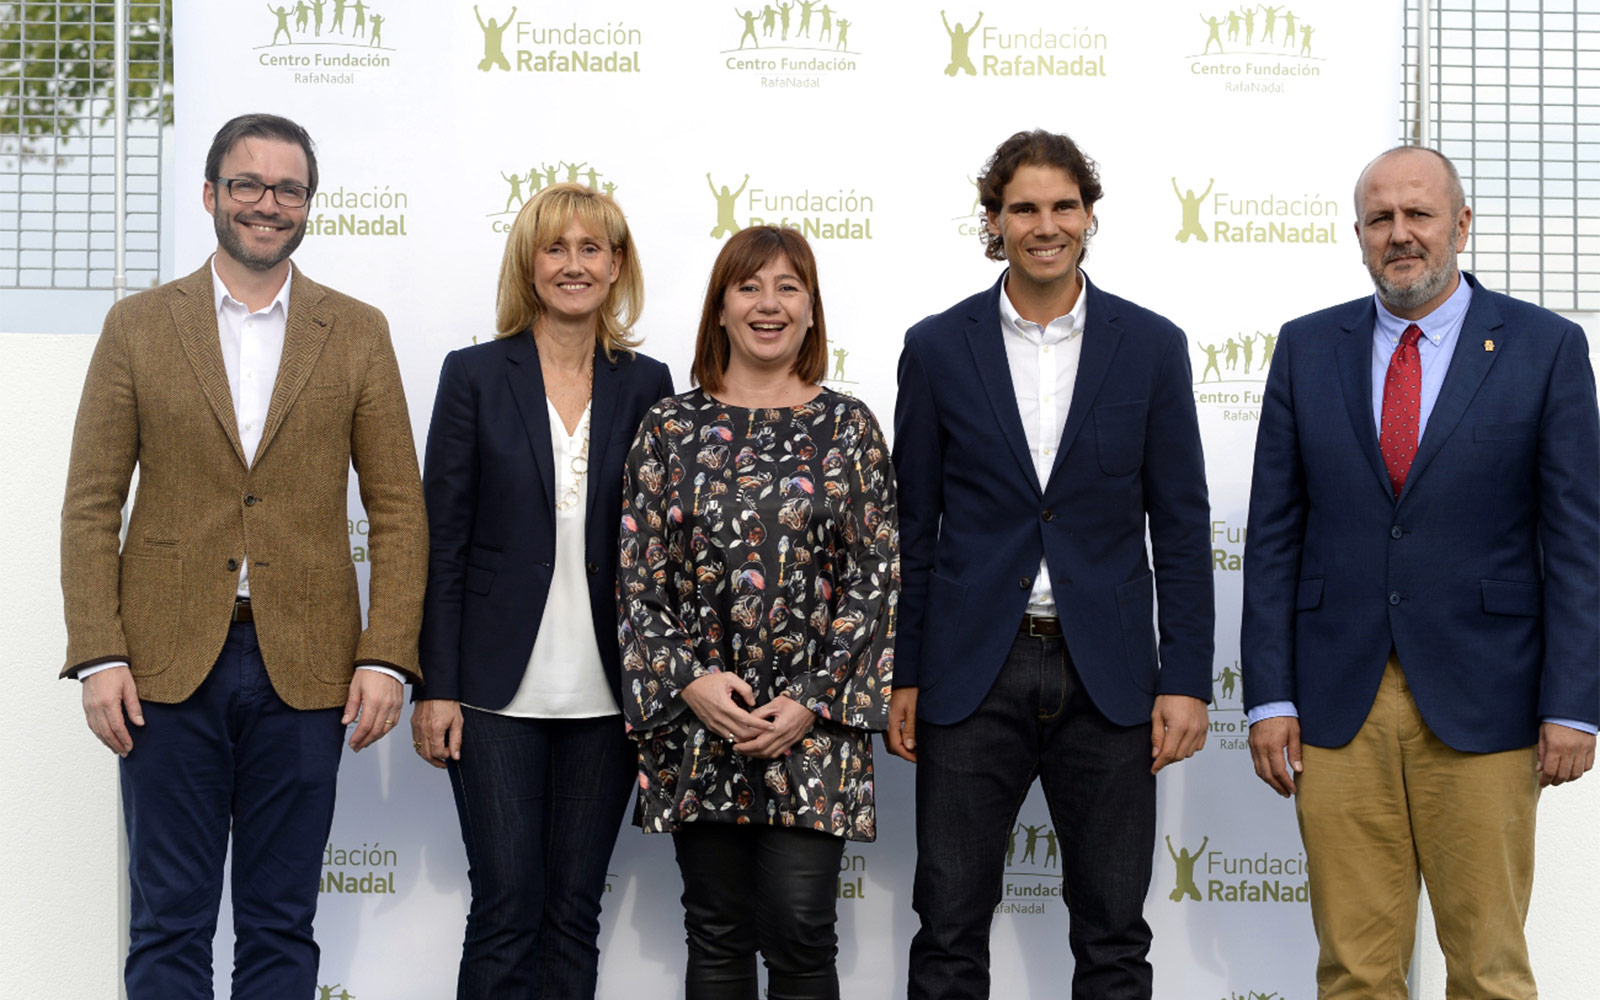 The Rafa Nadal Foundation launches its first independent centre in Palma de Mallorca